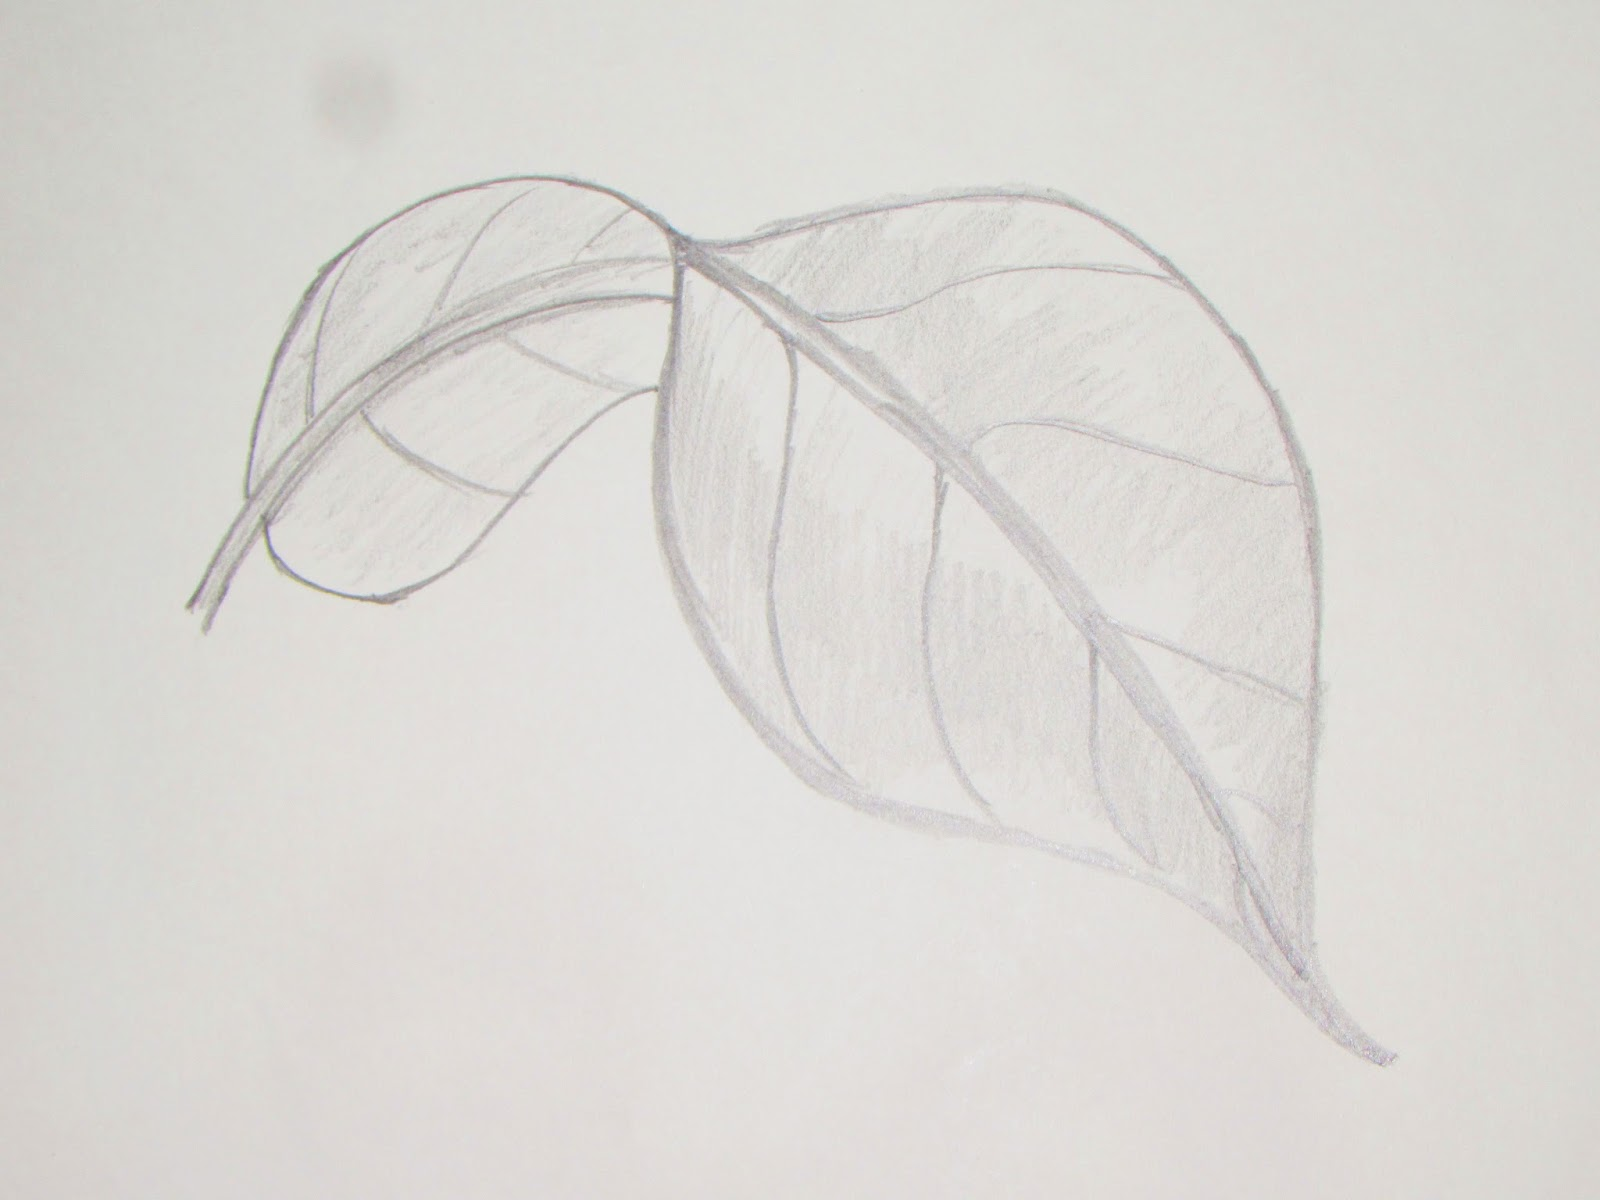 How to draw or sketch long turned mango leaf 5